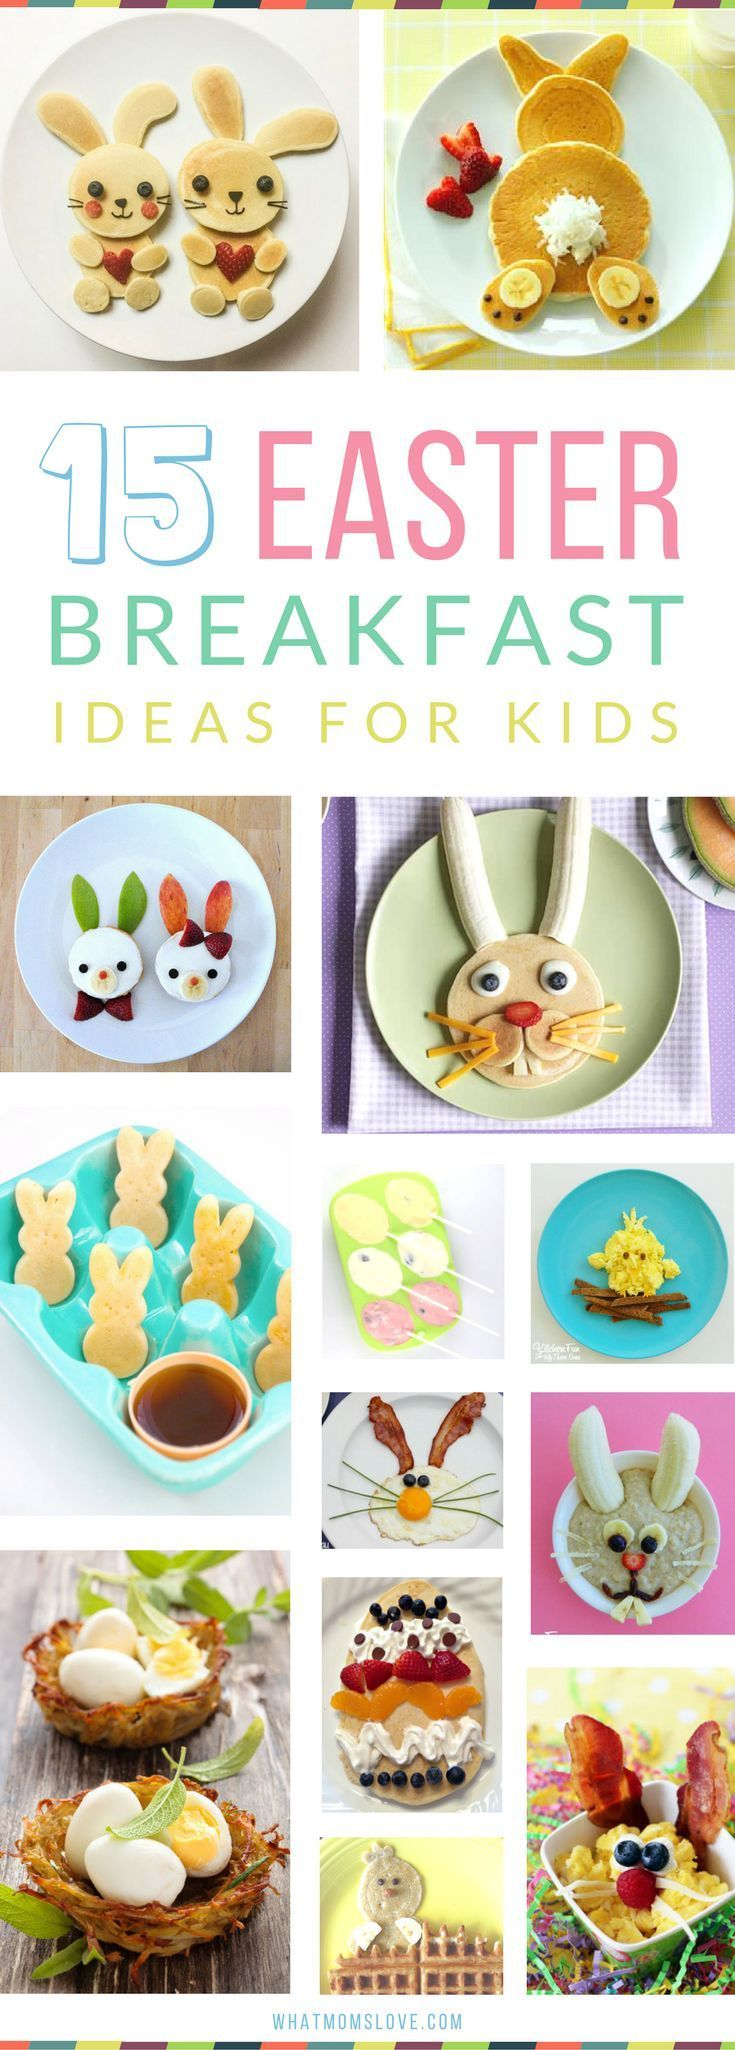 Your kids can eat the Easter Bunny all day long with these creative food ideas for Breakfast, Lunch or a Healthy Snack. Plus, fun sweet treats & dessert recipes!